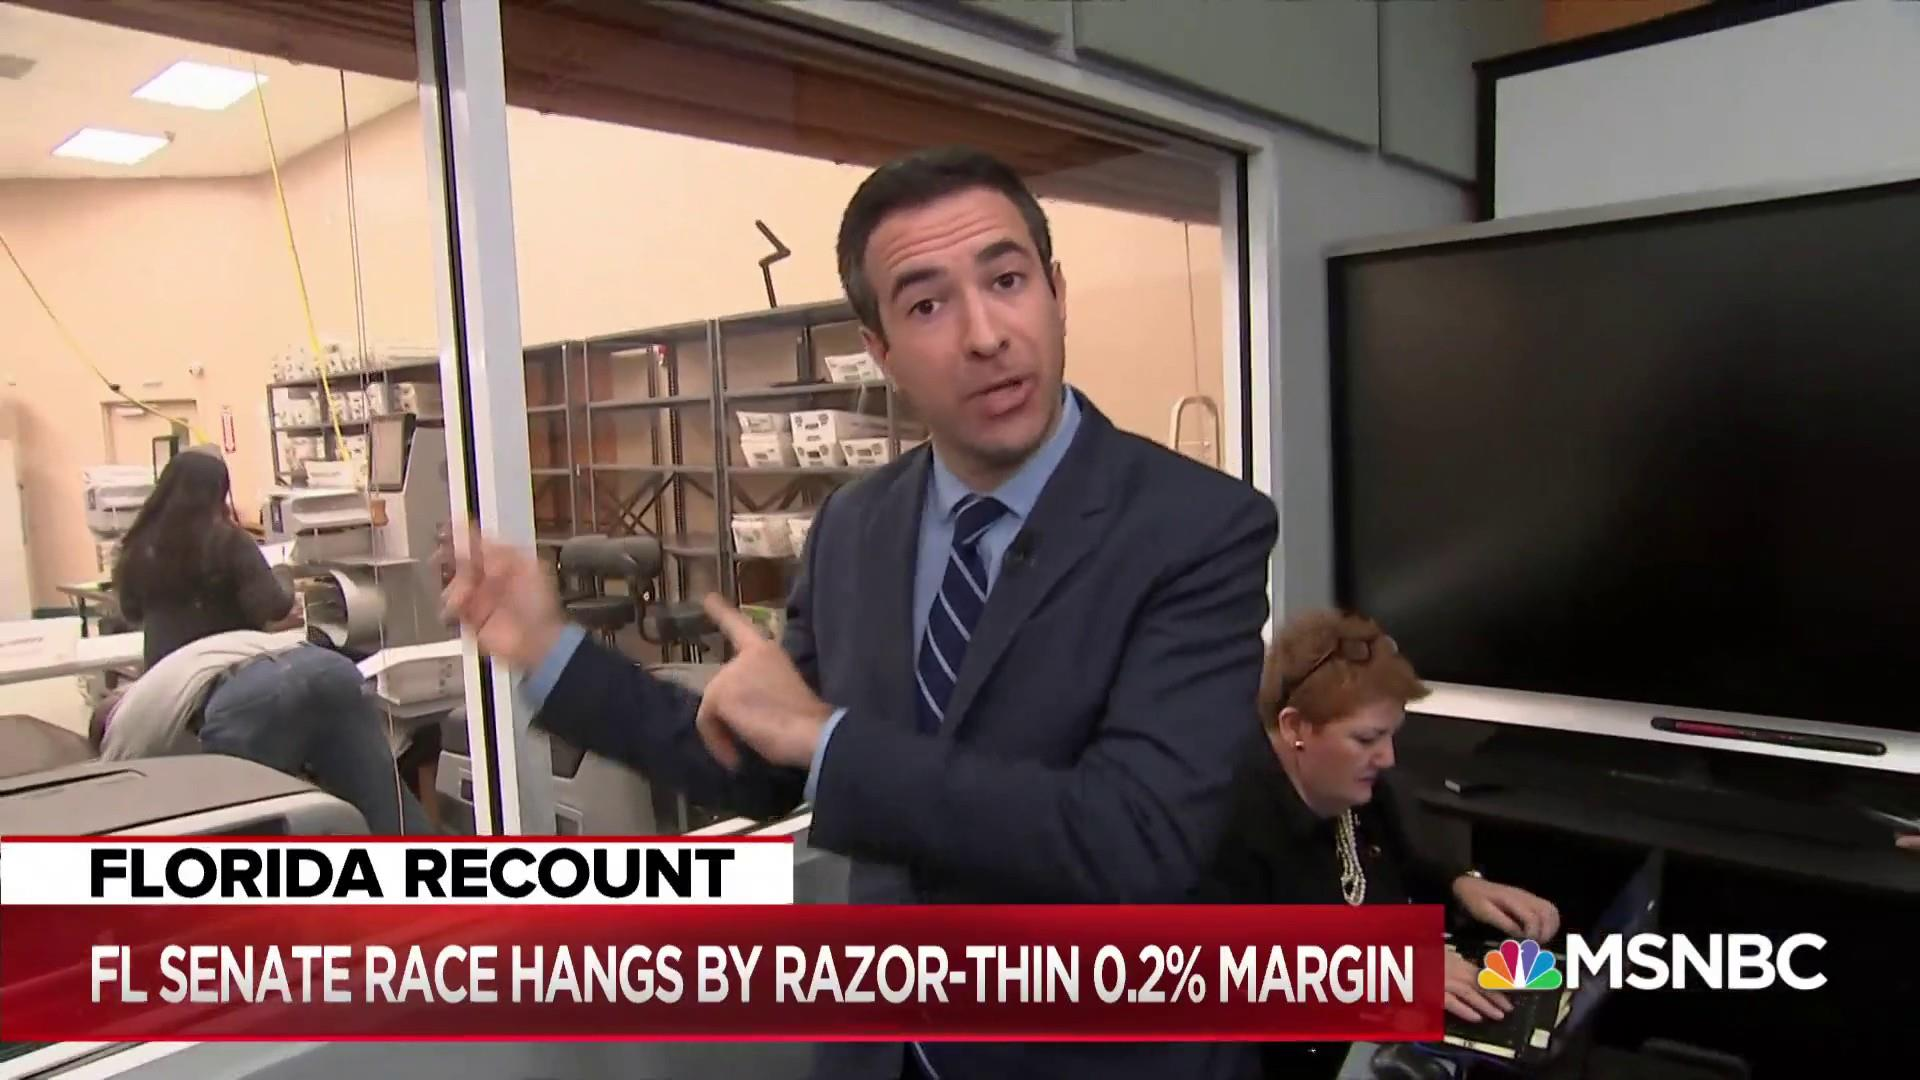 Ari Melber: How the Florida recount process actually works